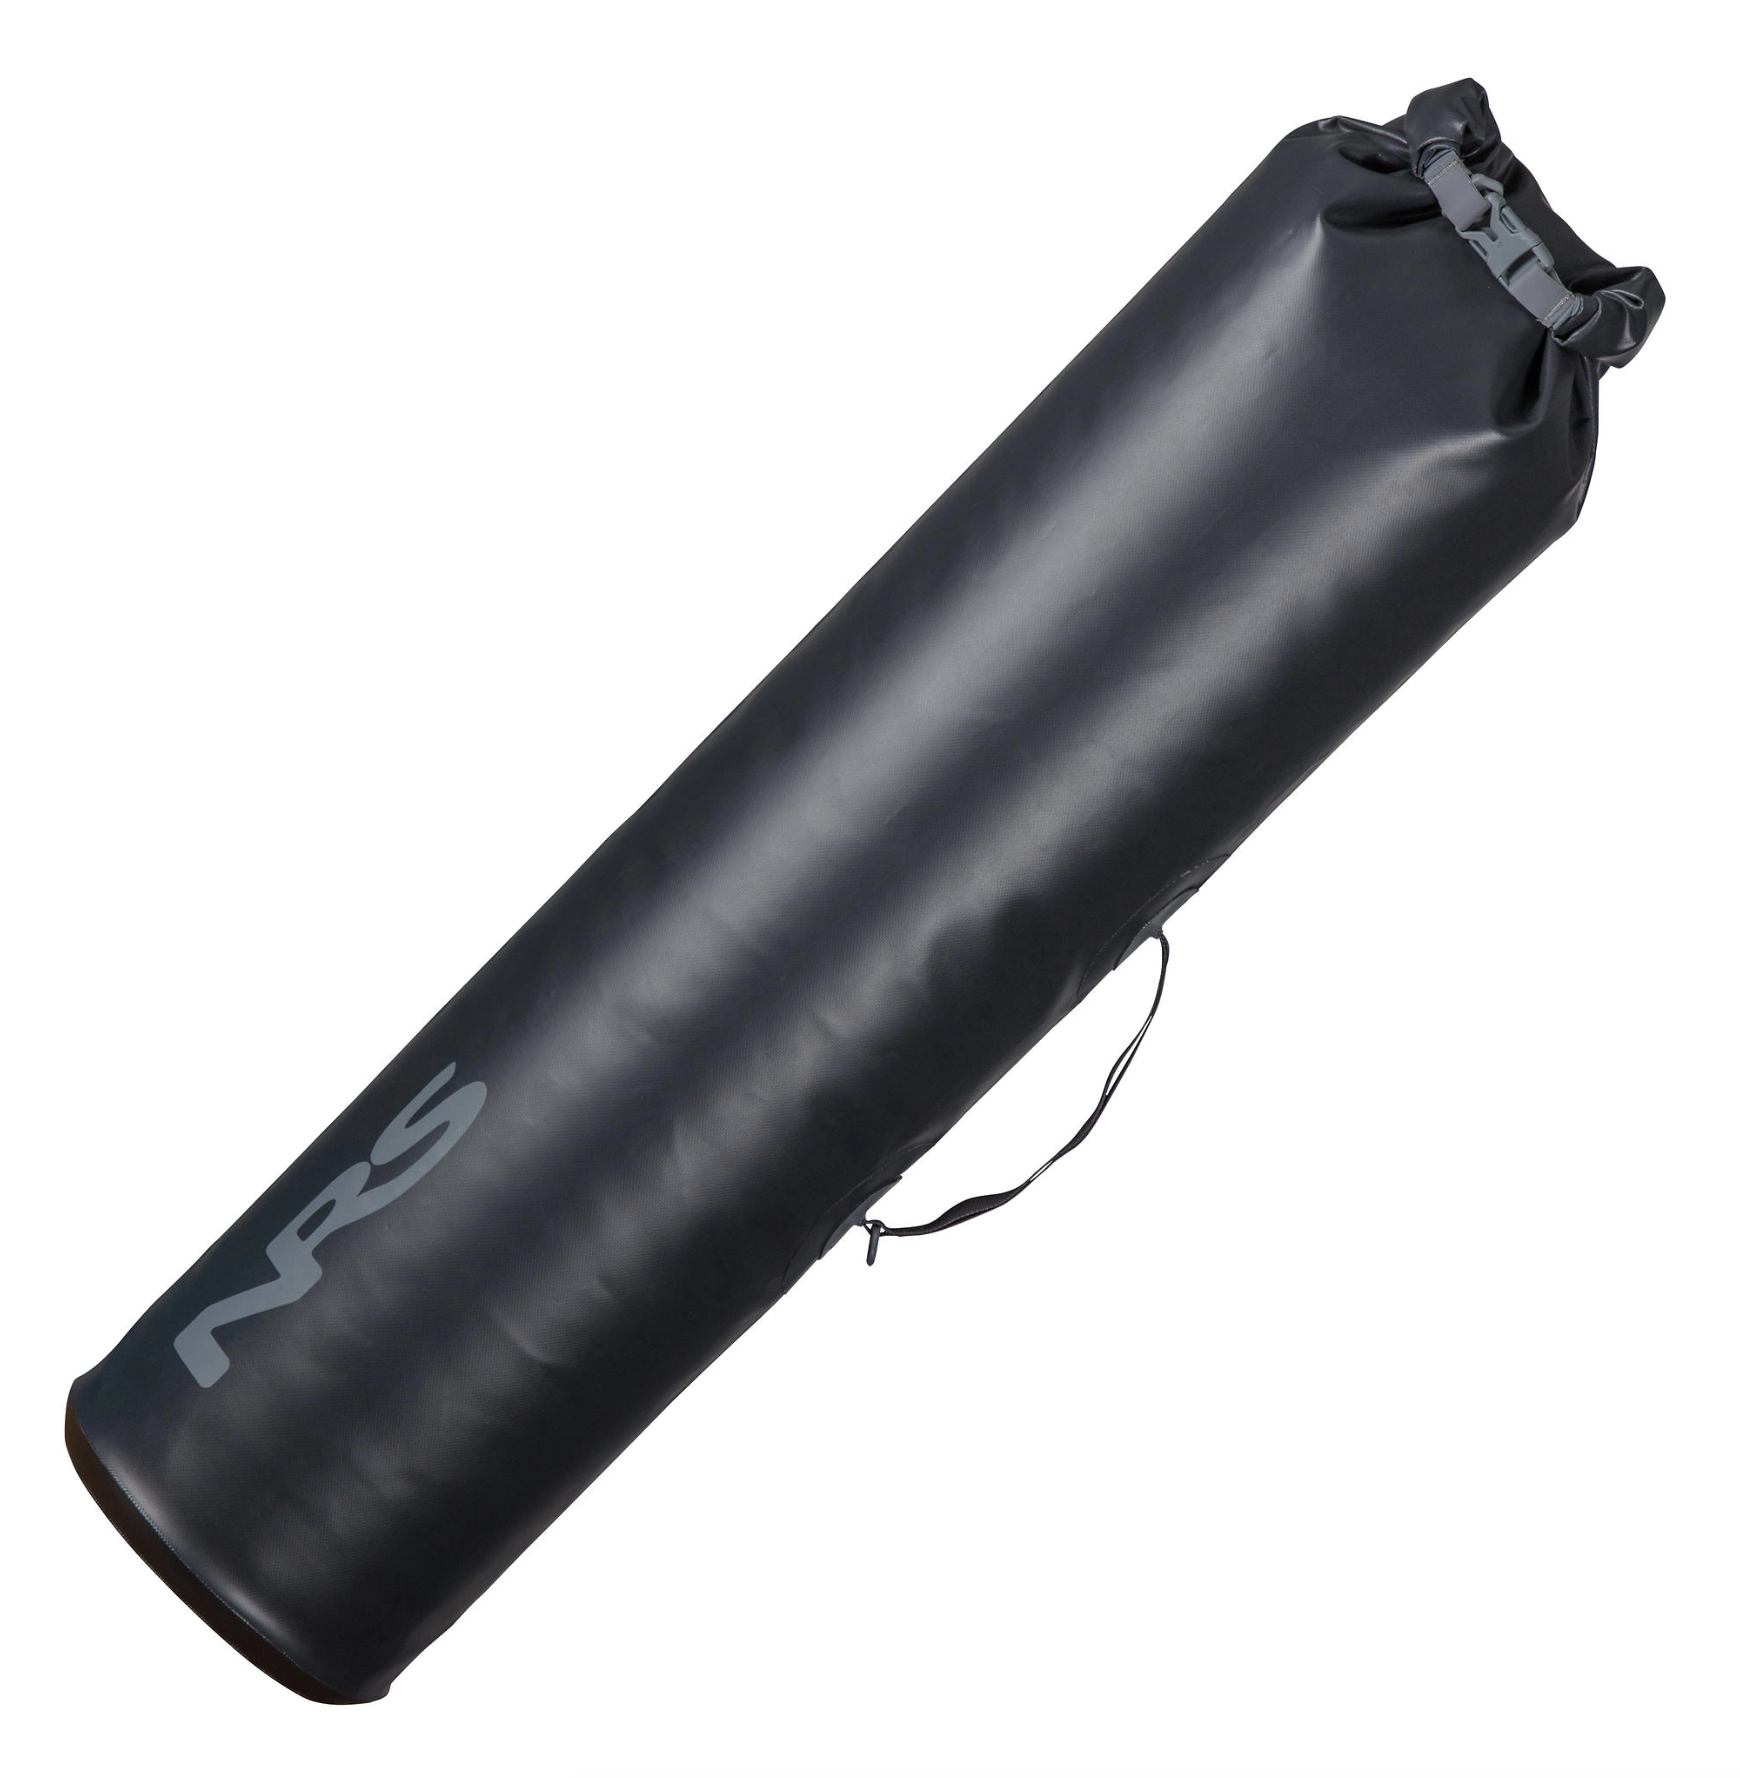 Bags, Boxes, Cases & Packs: Extra Long Dry Bag by NRS - Image 4822